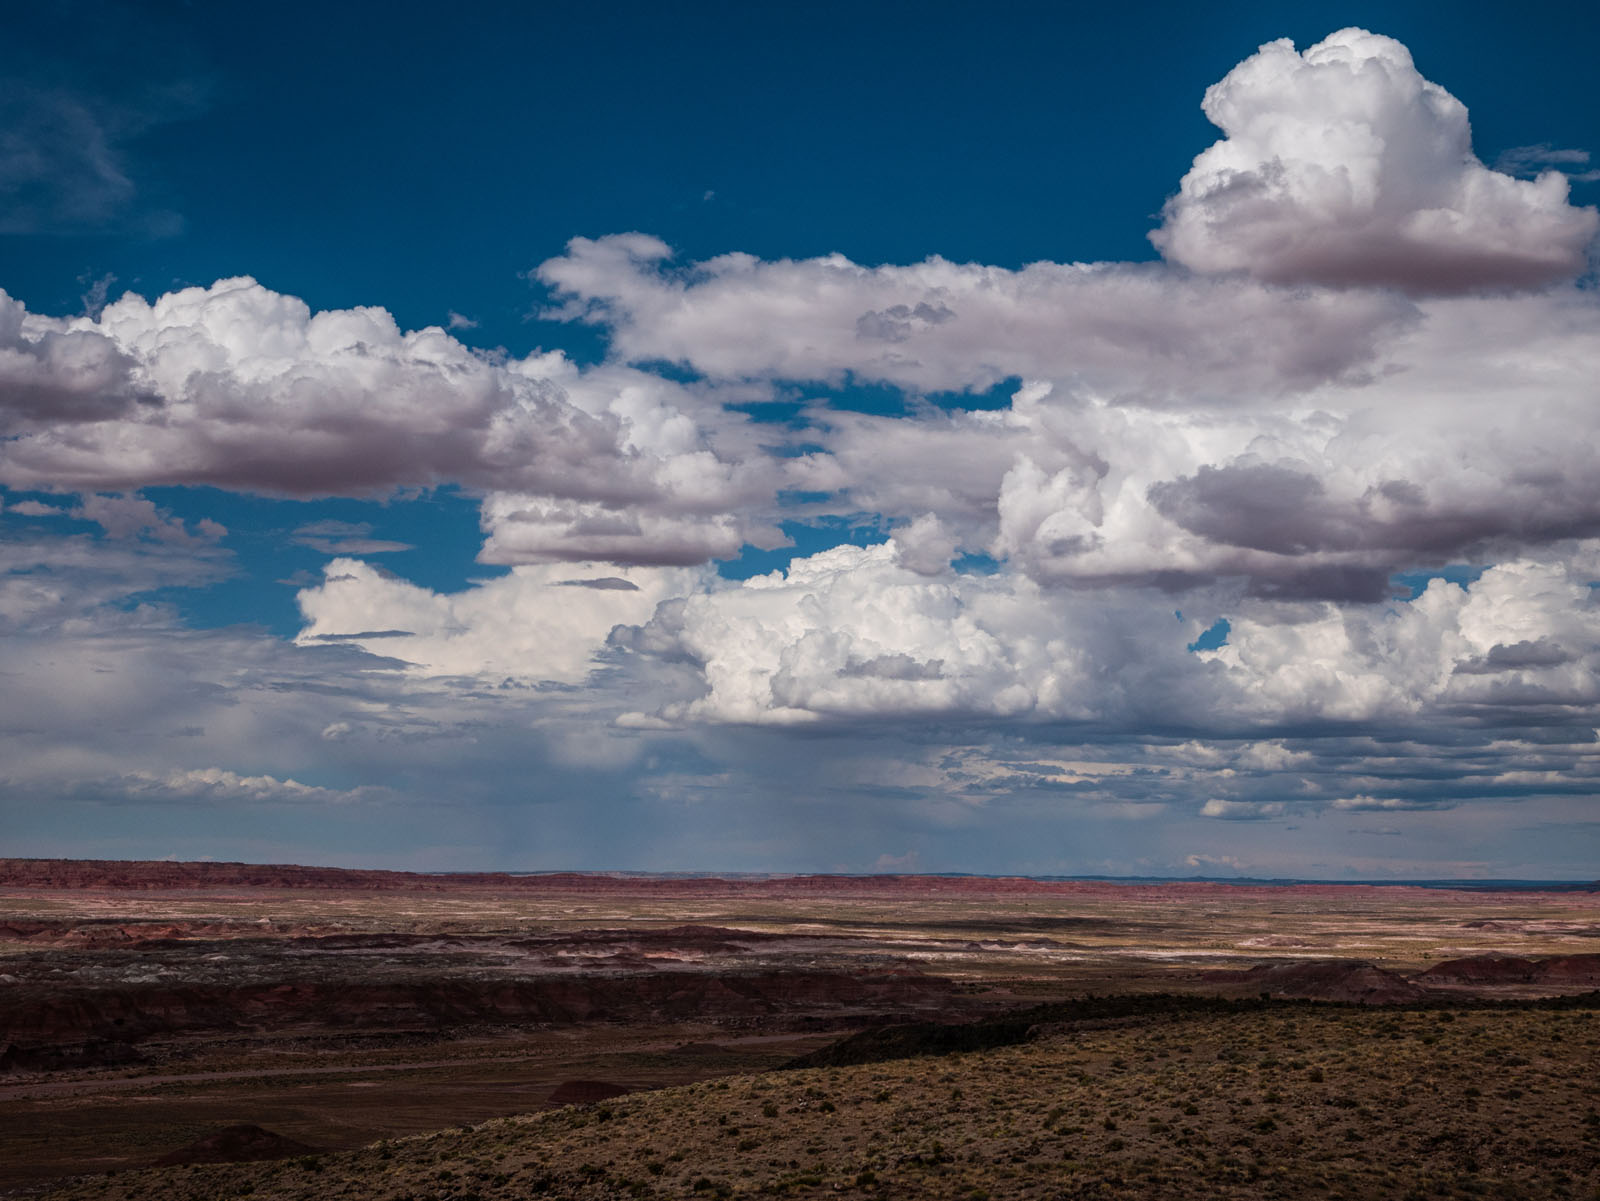 CO_Vacationmoon_PaintedDesert-1010458.jpg